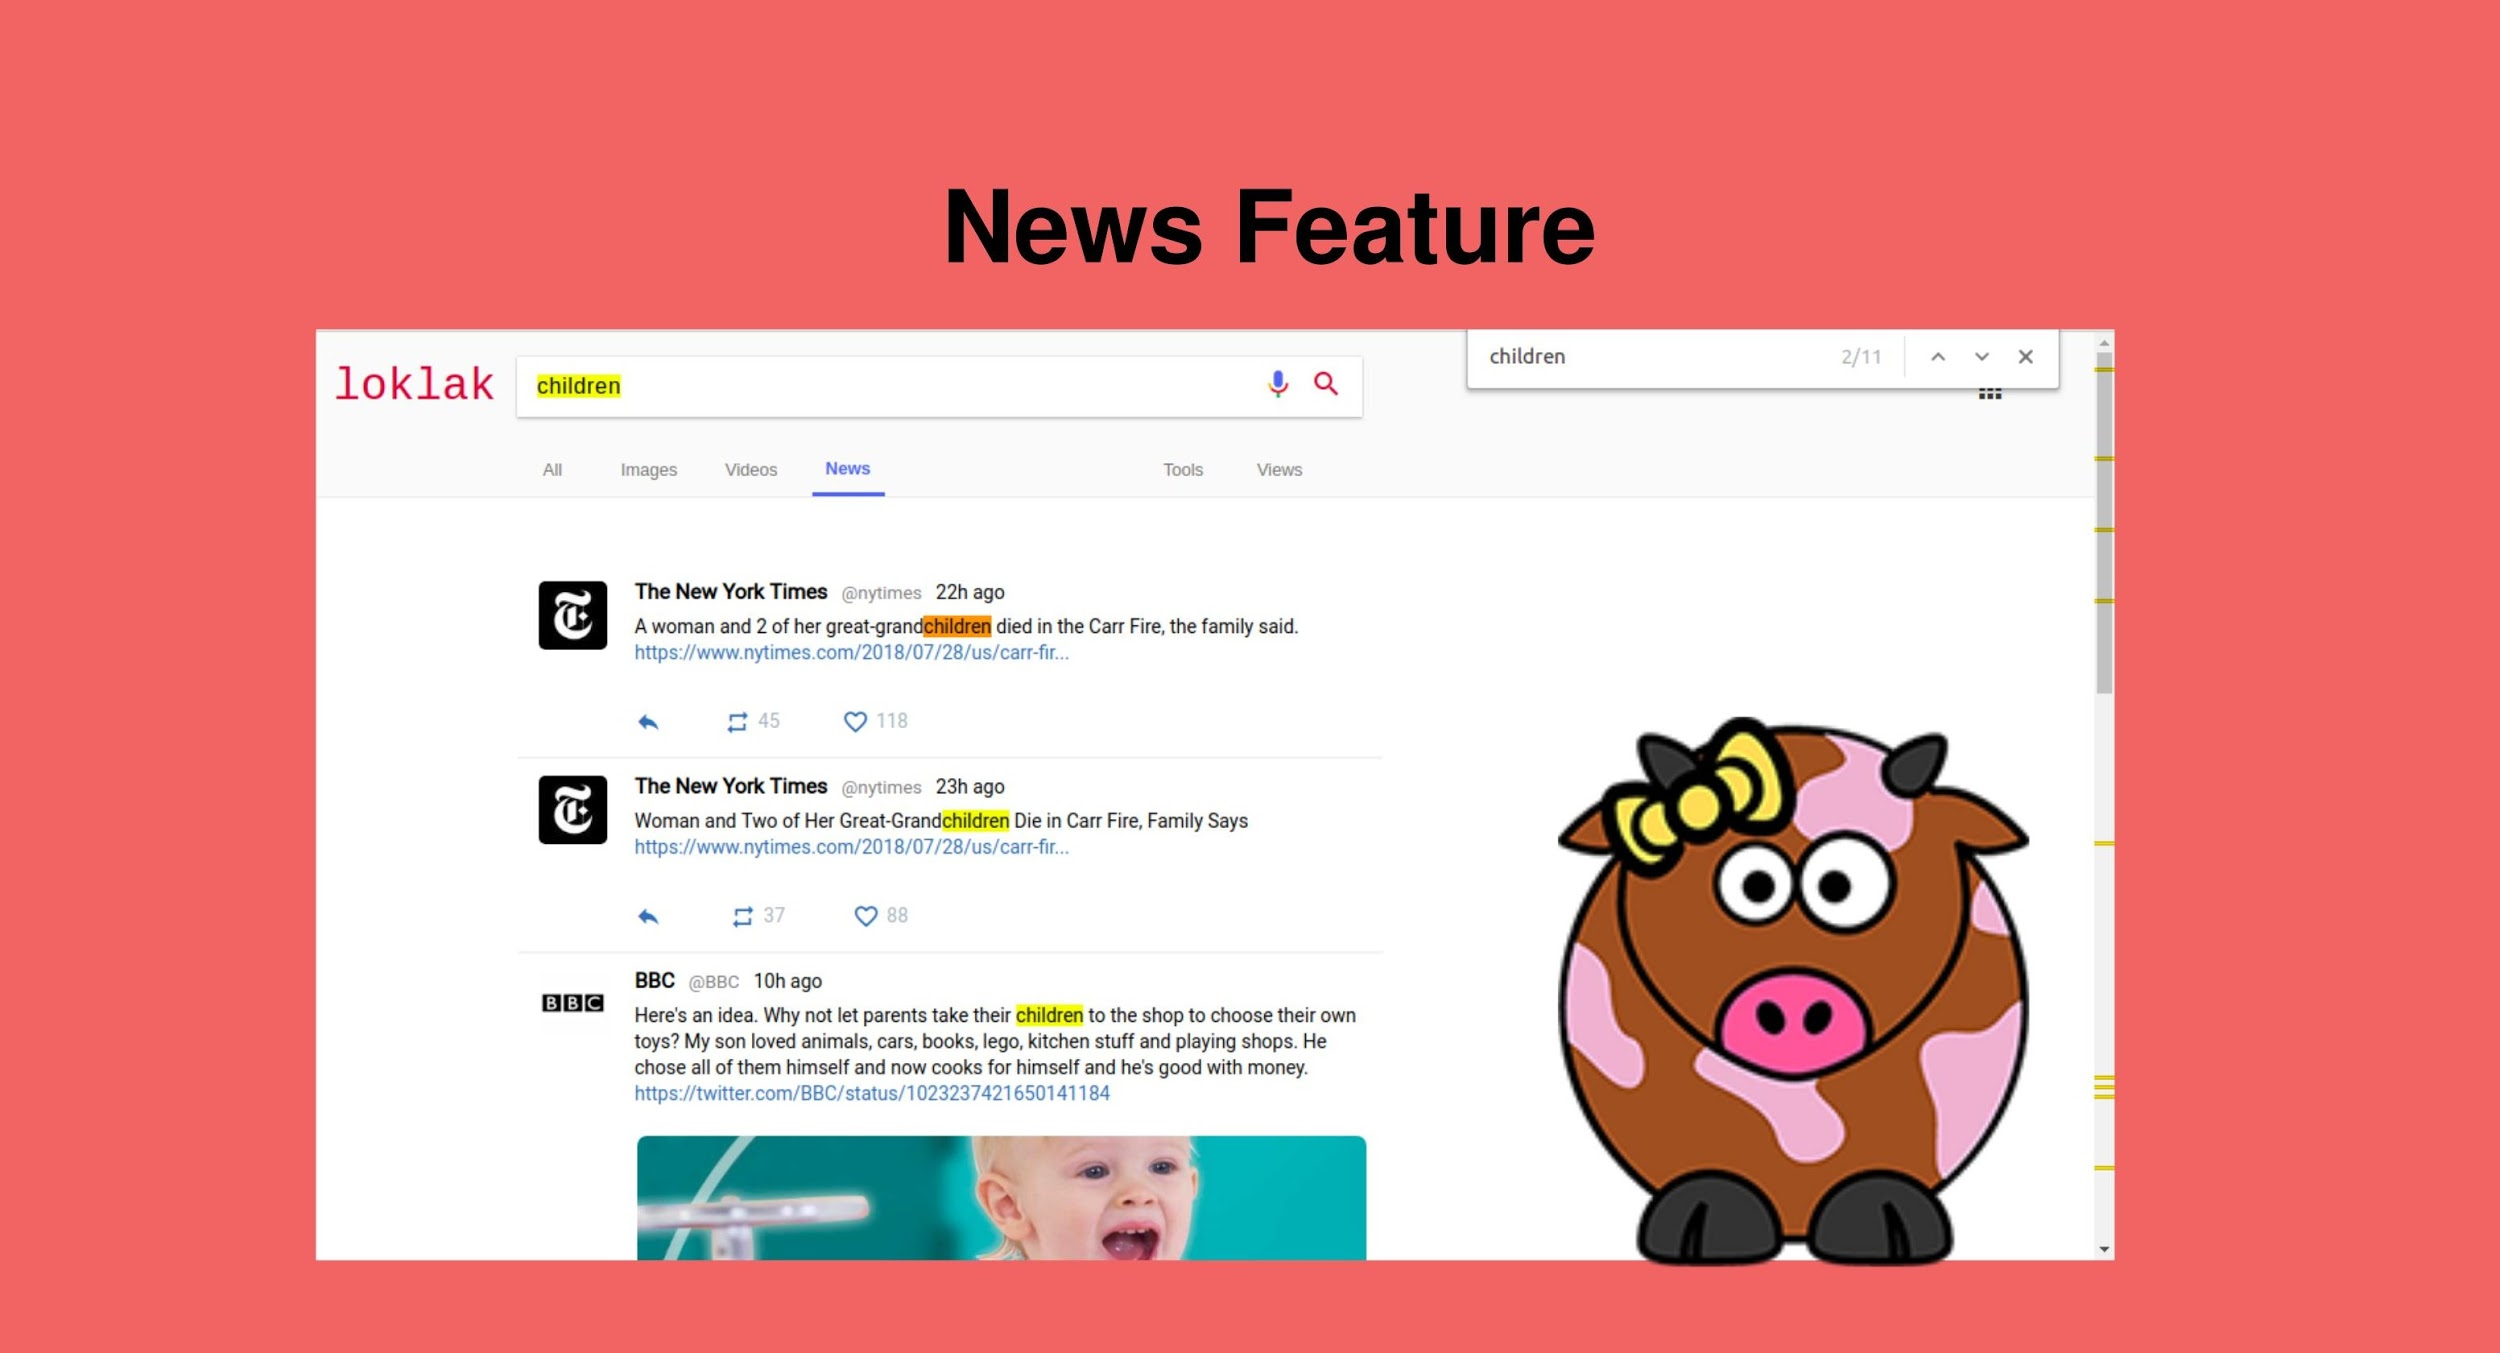 Implementing news feature in loklak